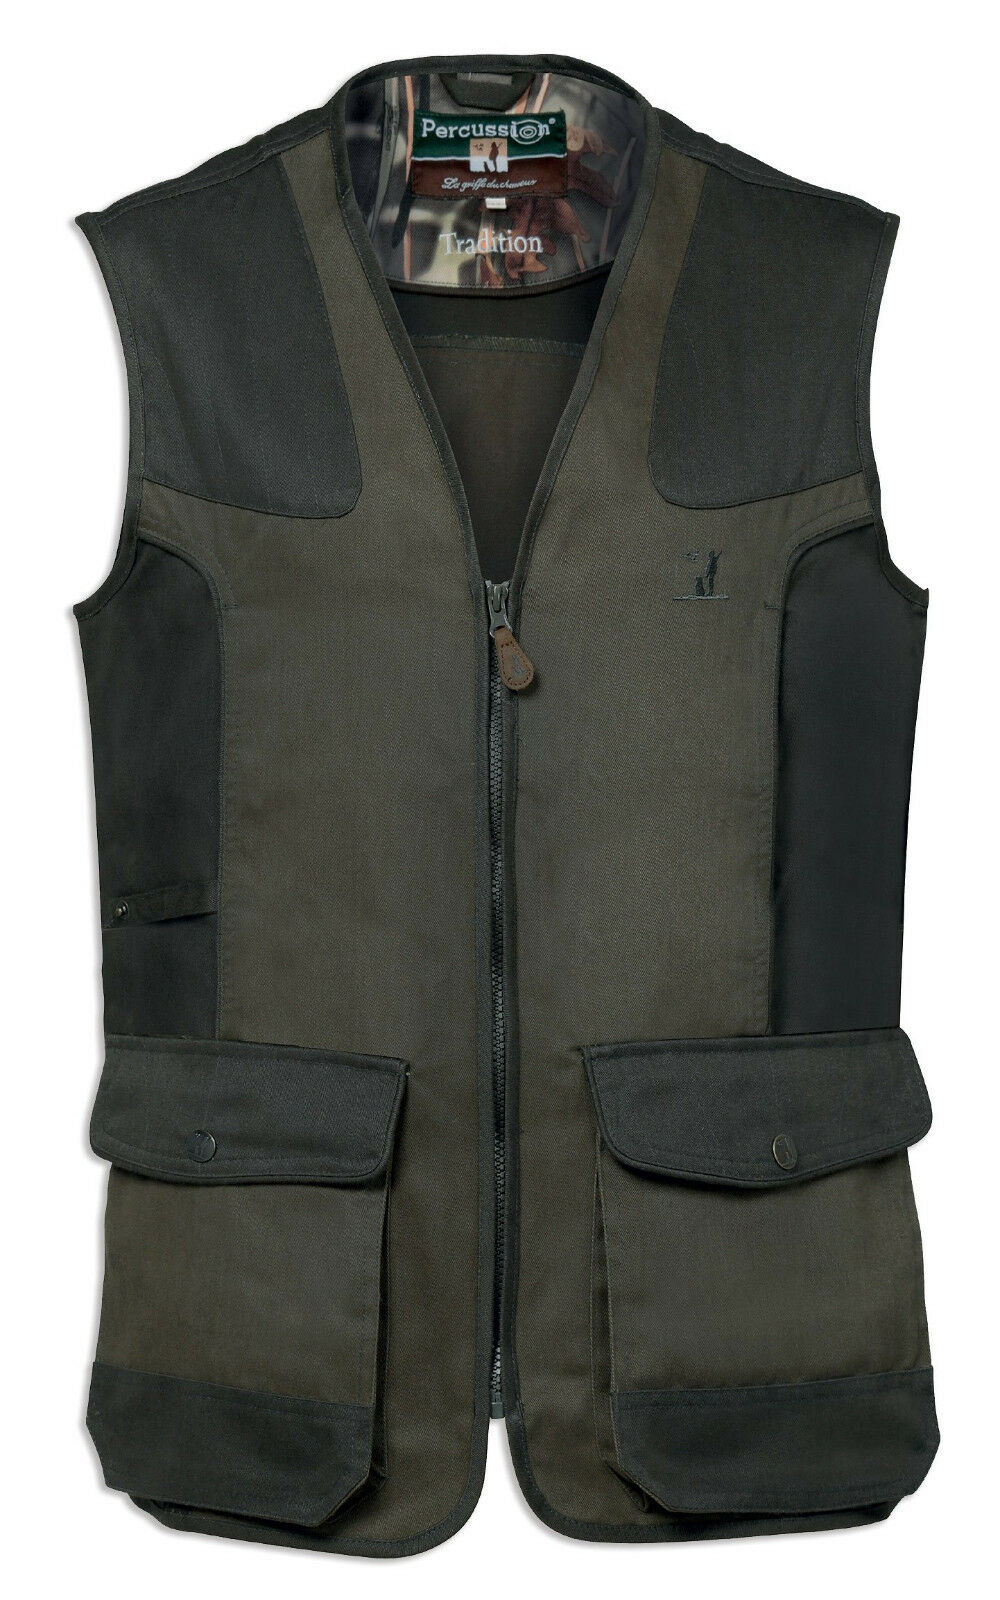 Percussion Traditional Hunting Gilet Vest New for 2018 2019 season